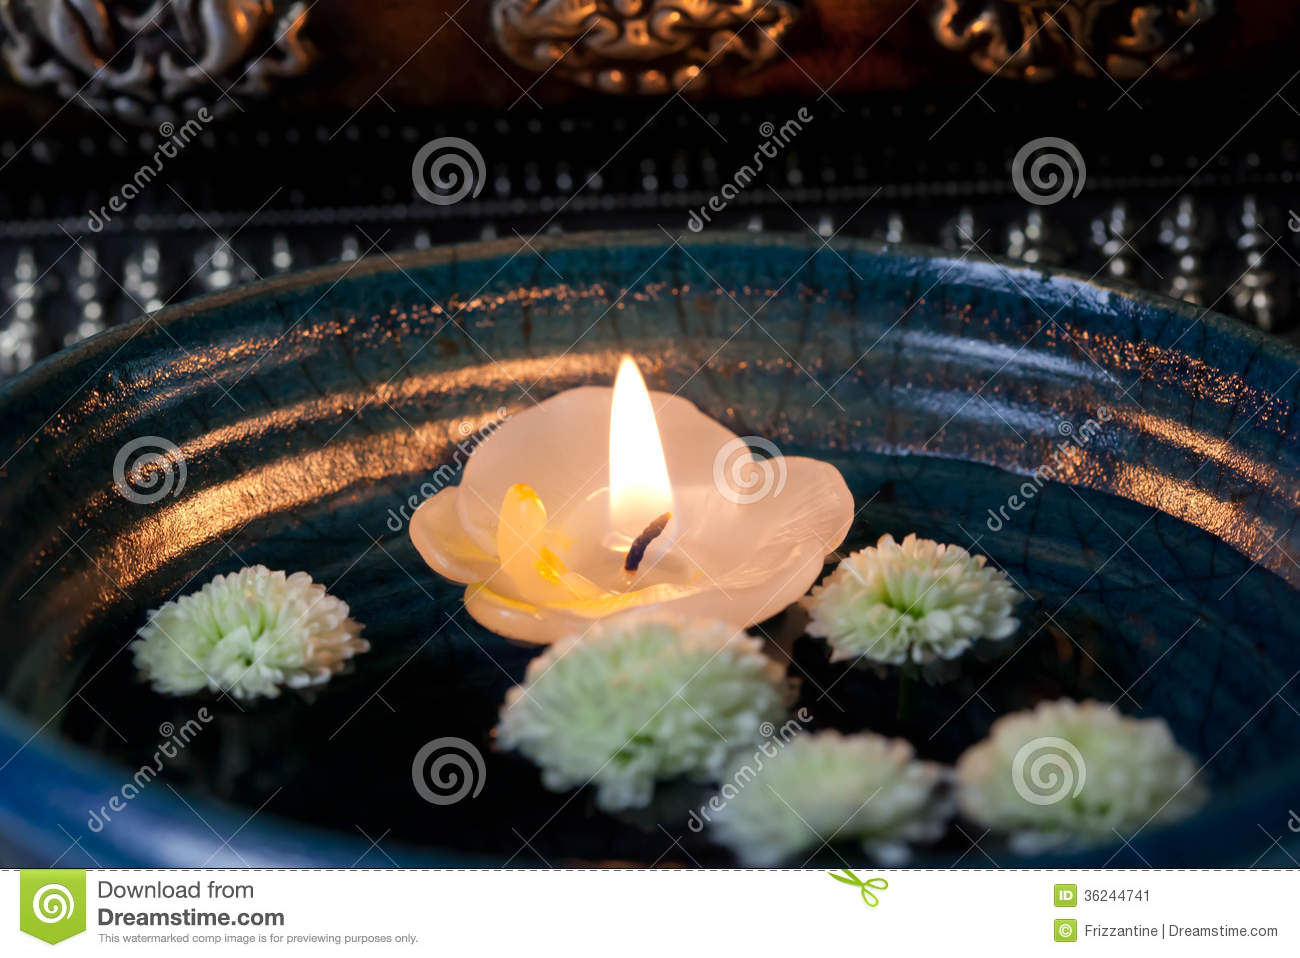 Floating Candle Asia - Stock Photo Stock Image - Image: 36244741